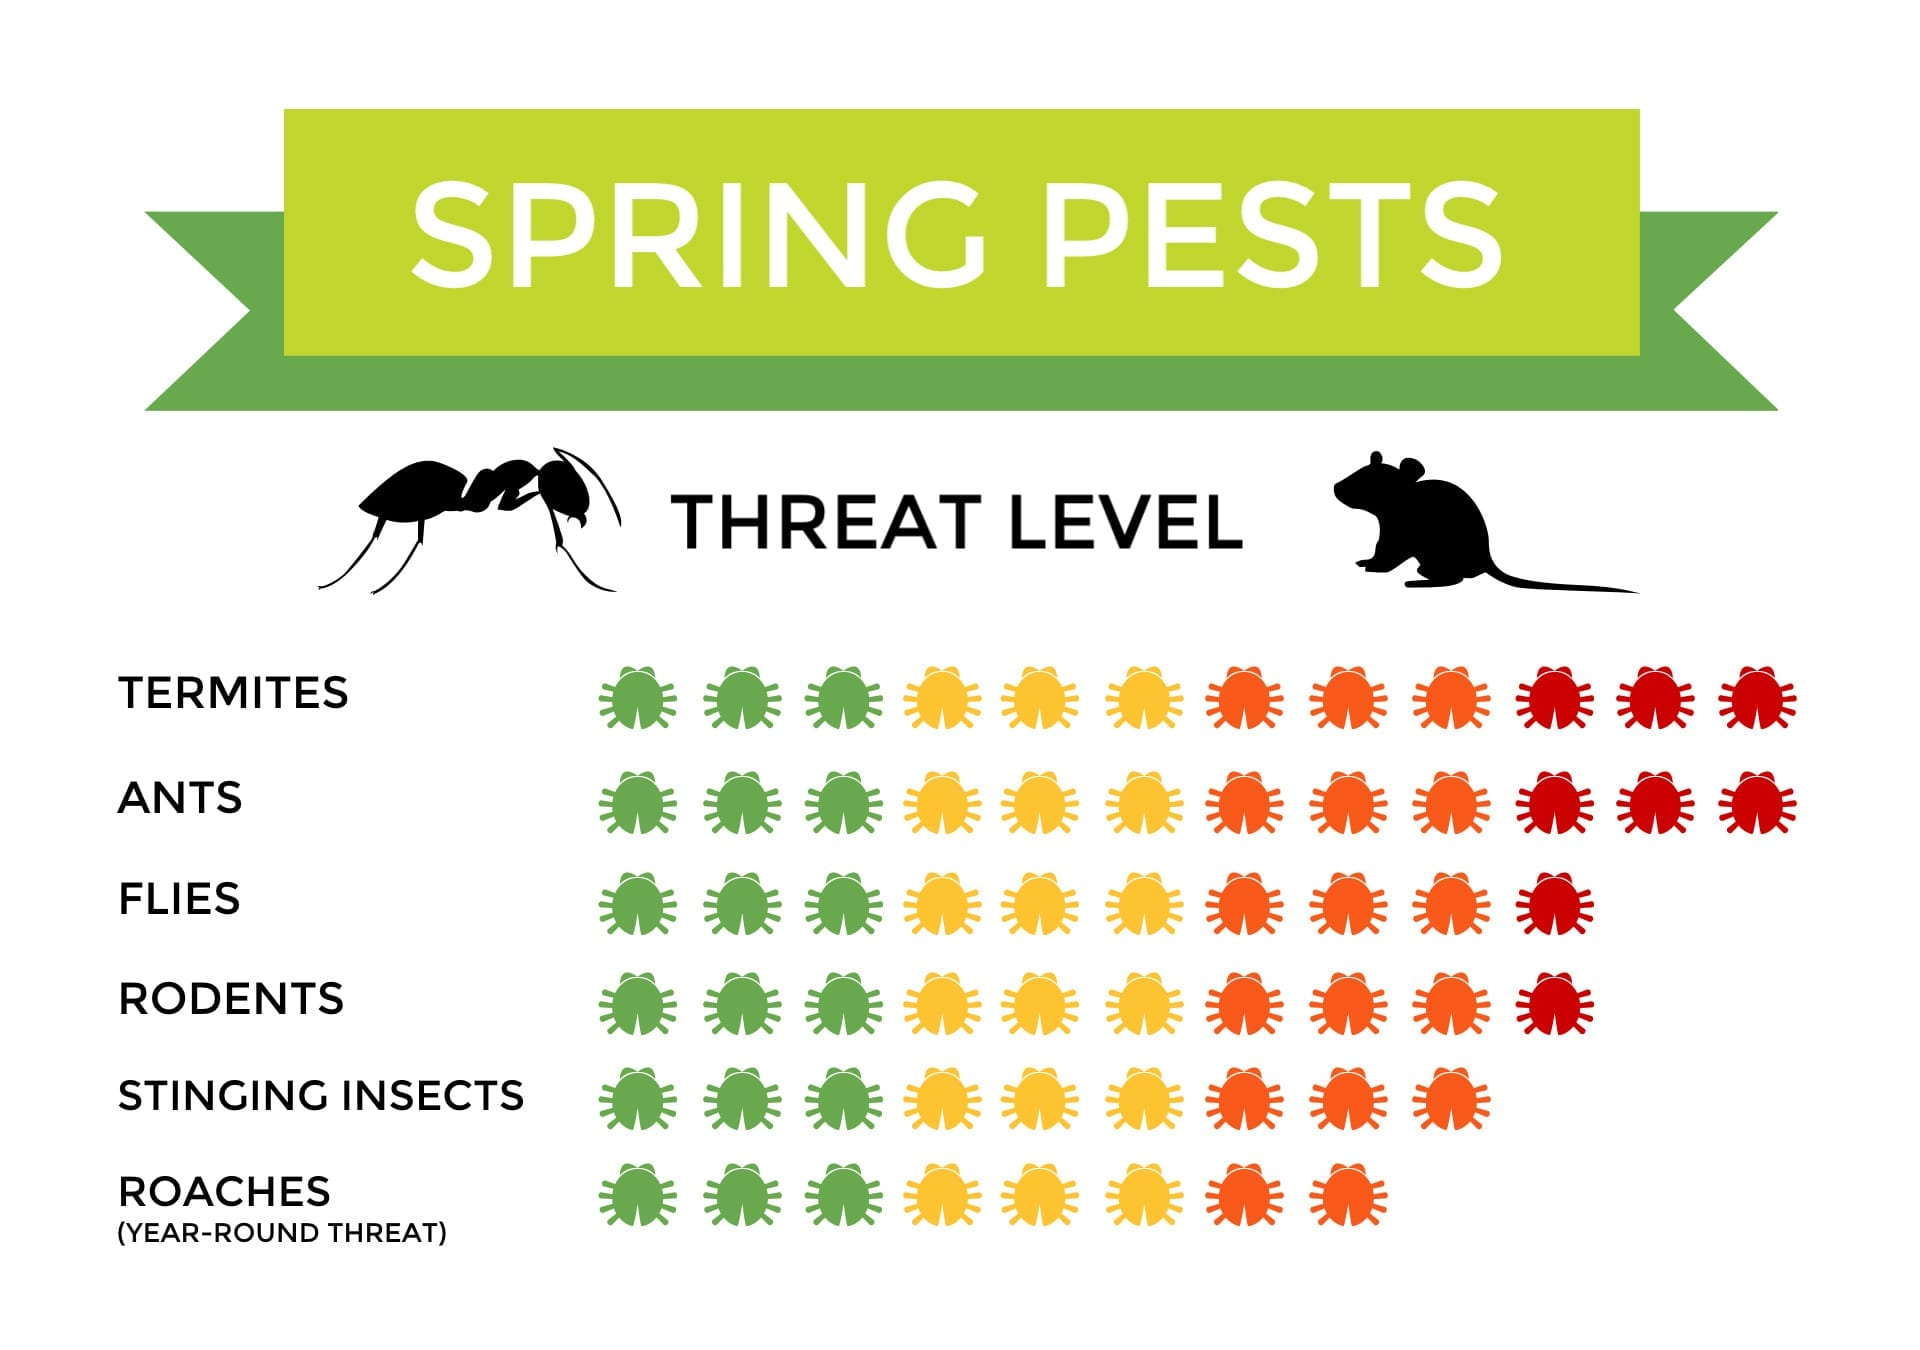 Spring Pests, Start Pest Control Management